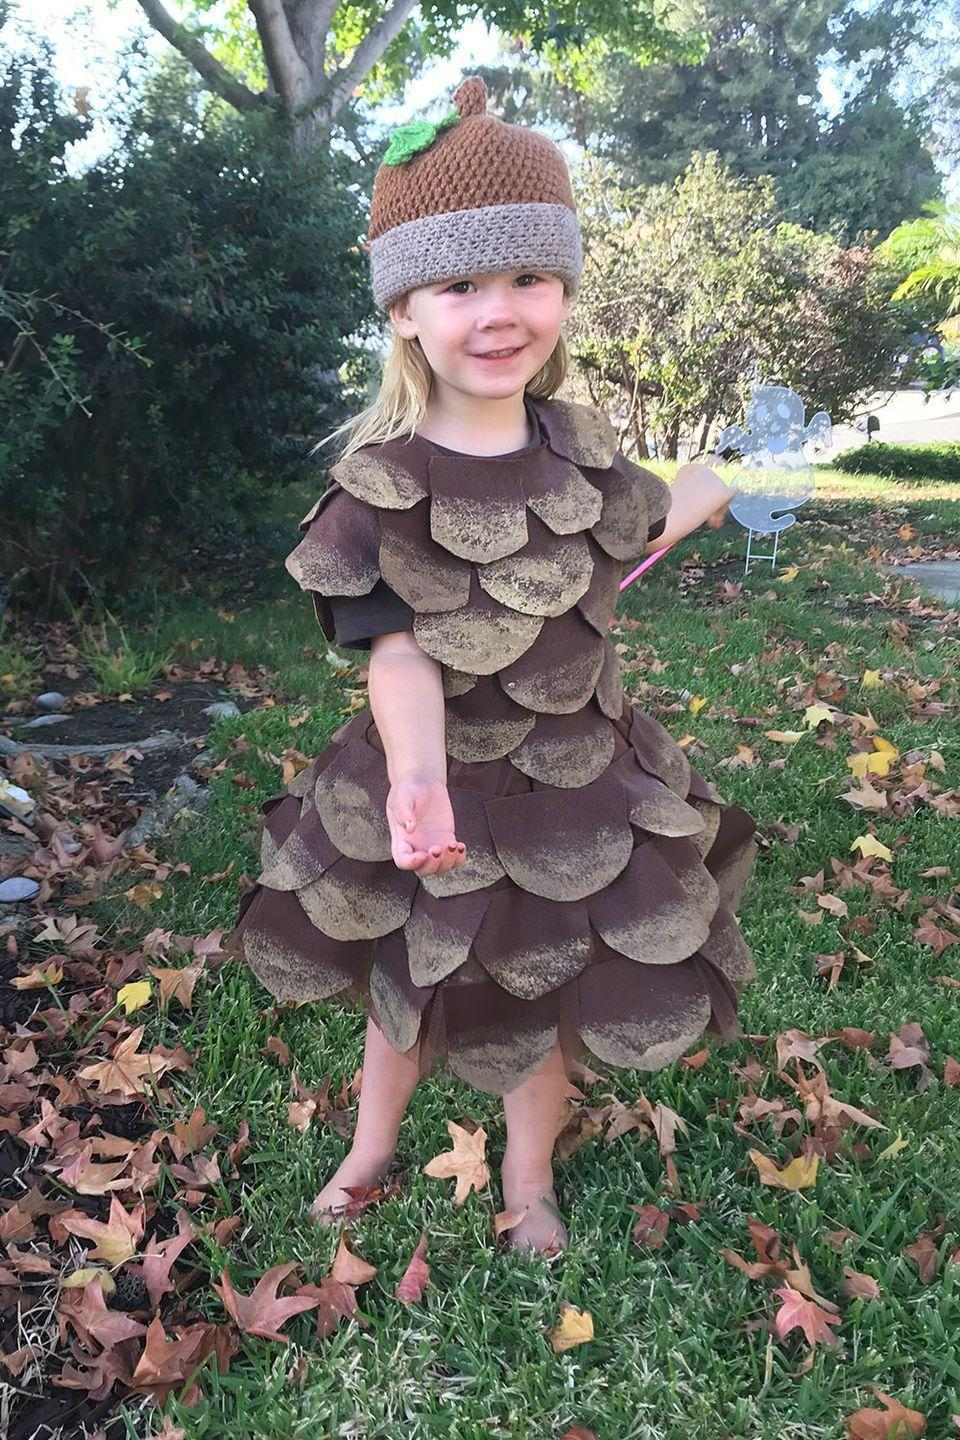 "<p>This <a href=""https://nuggetlands.com/pine-cone-halloween-costume-diy/"" rel=""nofollow noopener"" target=""_blank"" data-ylk=""slk:little pine cone creation"" class=""link rapid-noclick-resp"">little pine cone creation</a> is perfect for Halloween or just anyone who is <em>really</em> into fall. </p>"